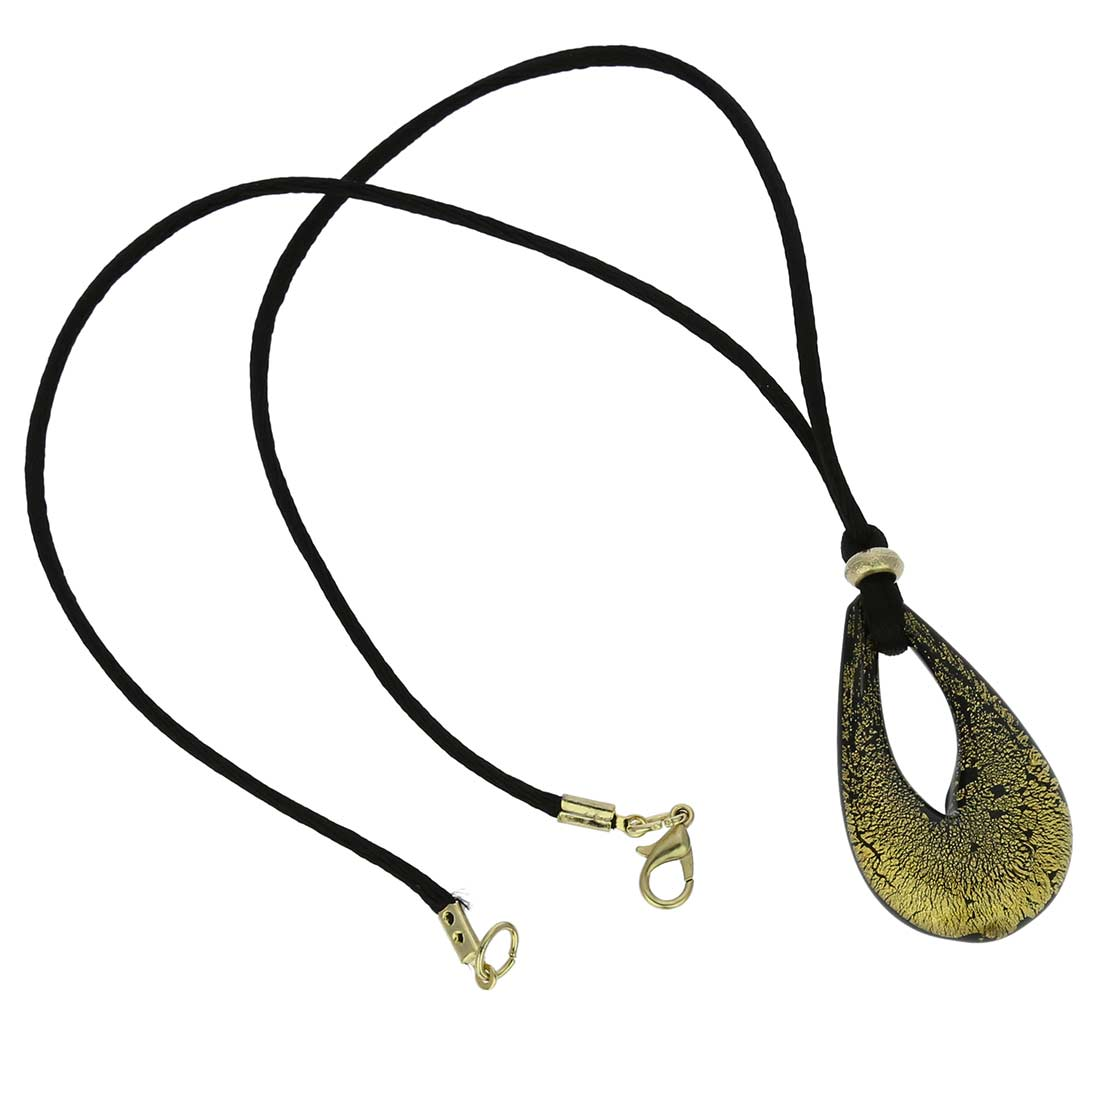 Gemma Murano Necklace - Black